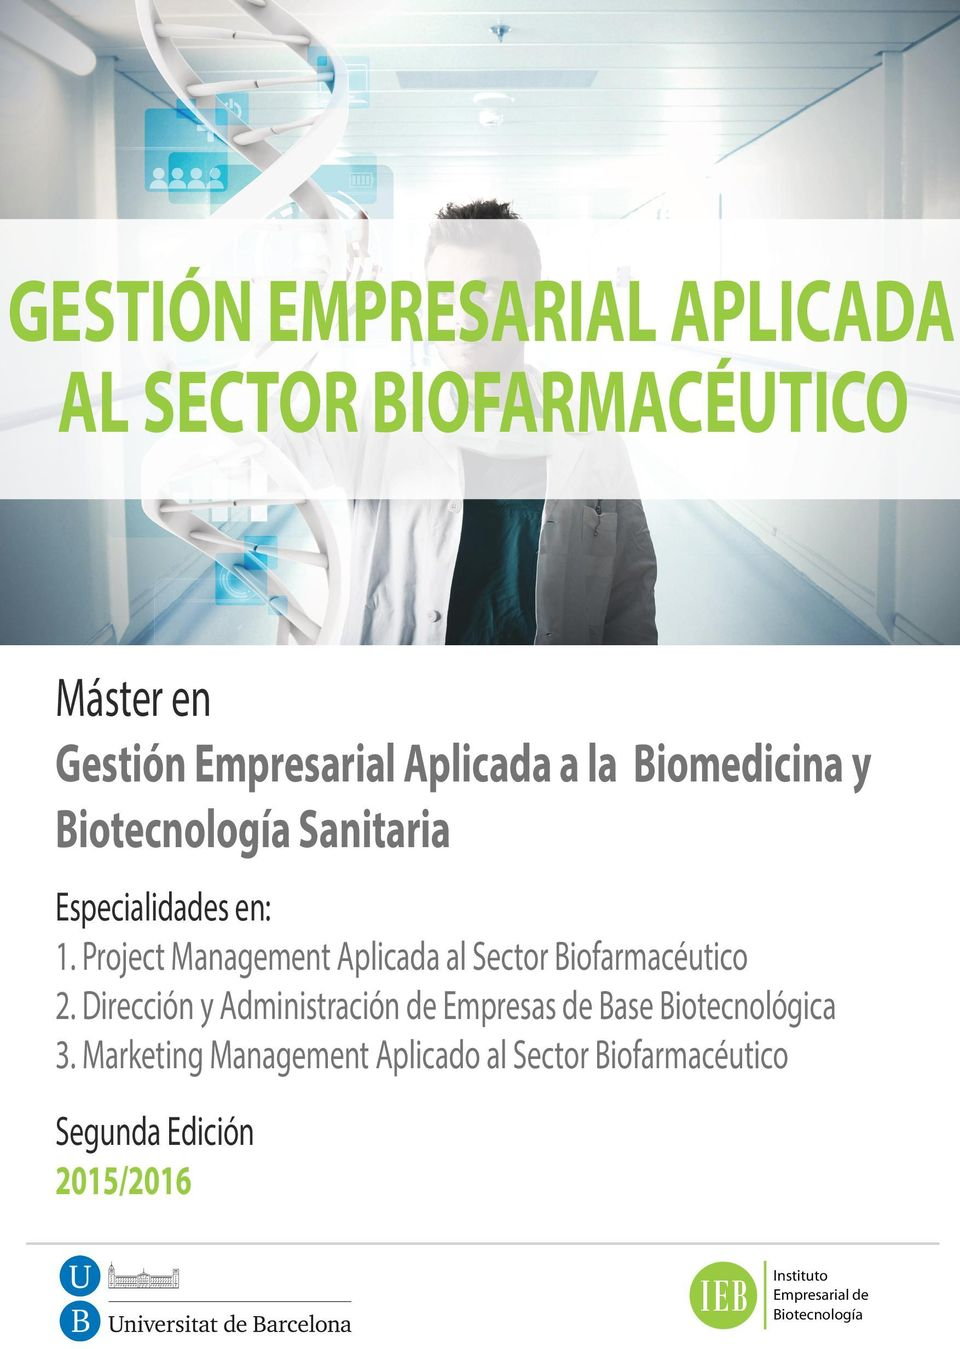 Project Management Aplicada al Sector Biofarmacéutico 2.